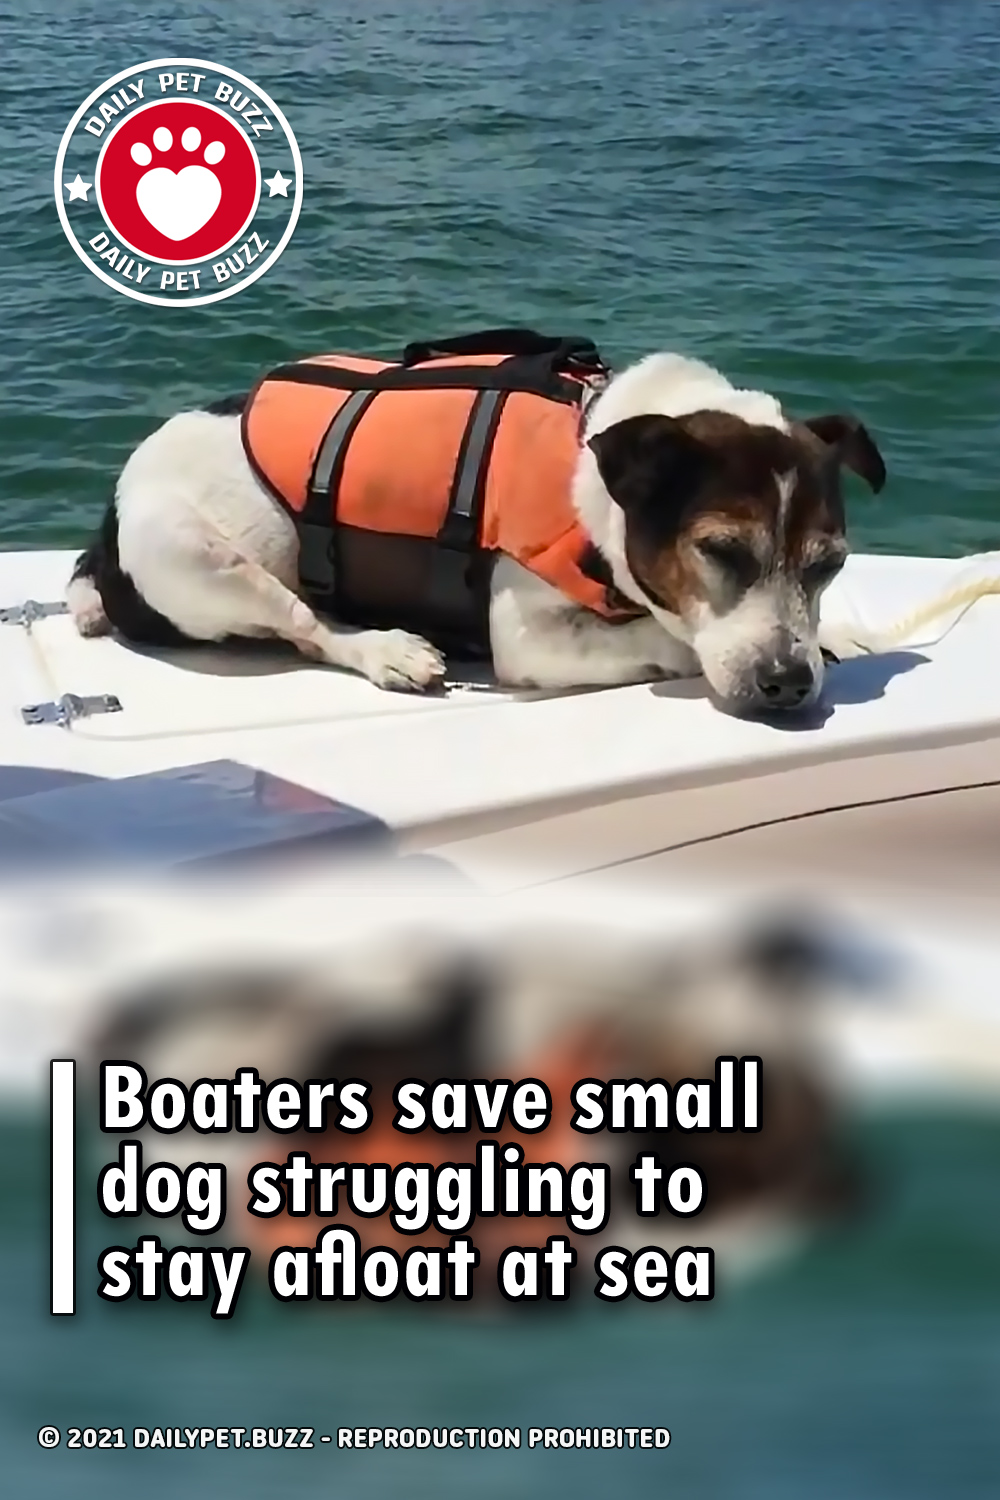 Boaters save small dog struggling to stay afloat at sea